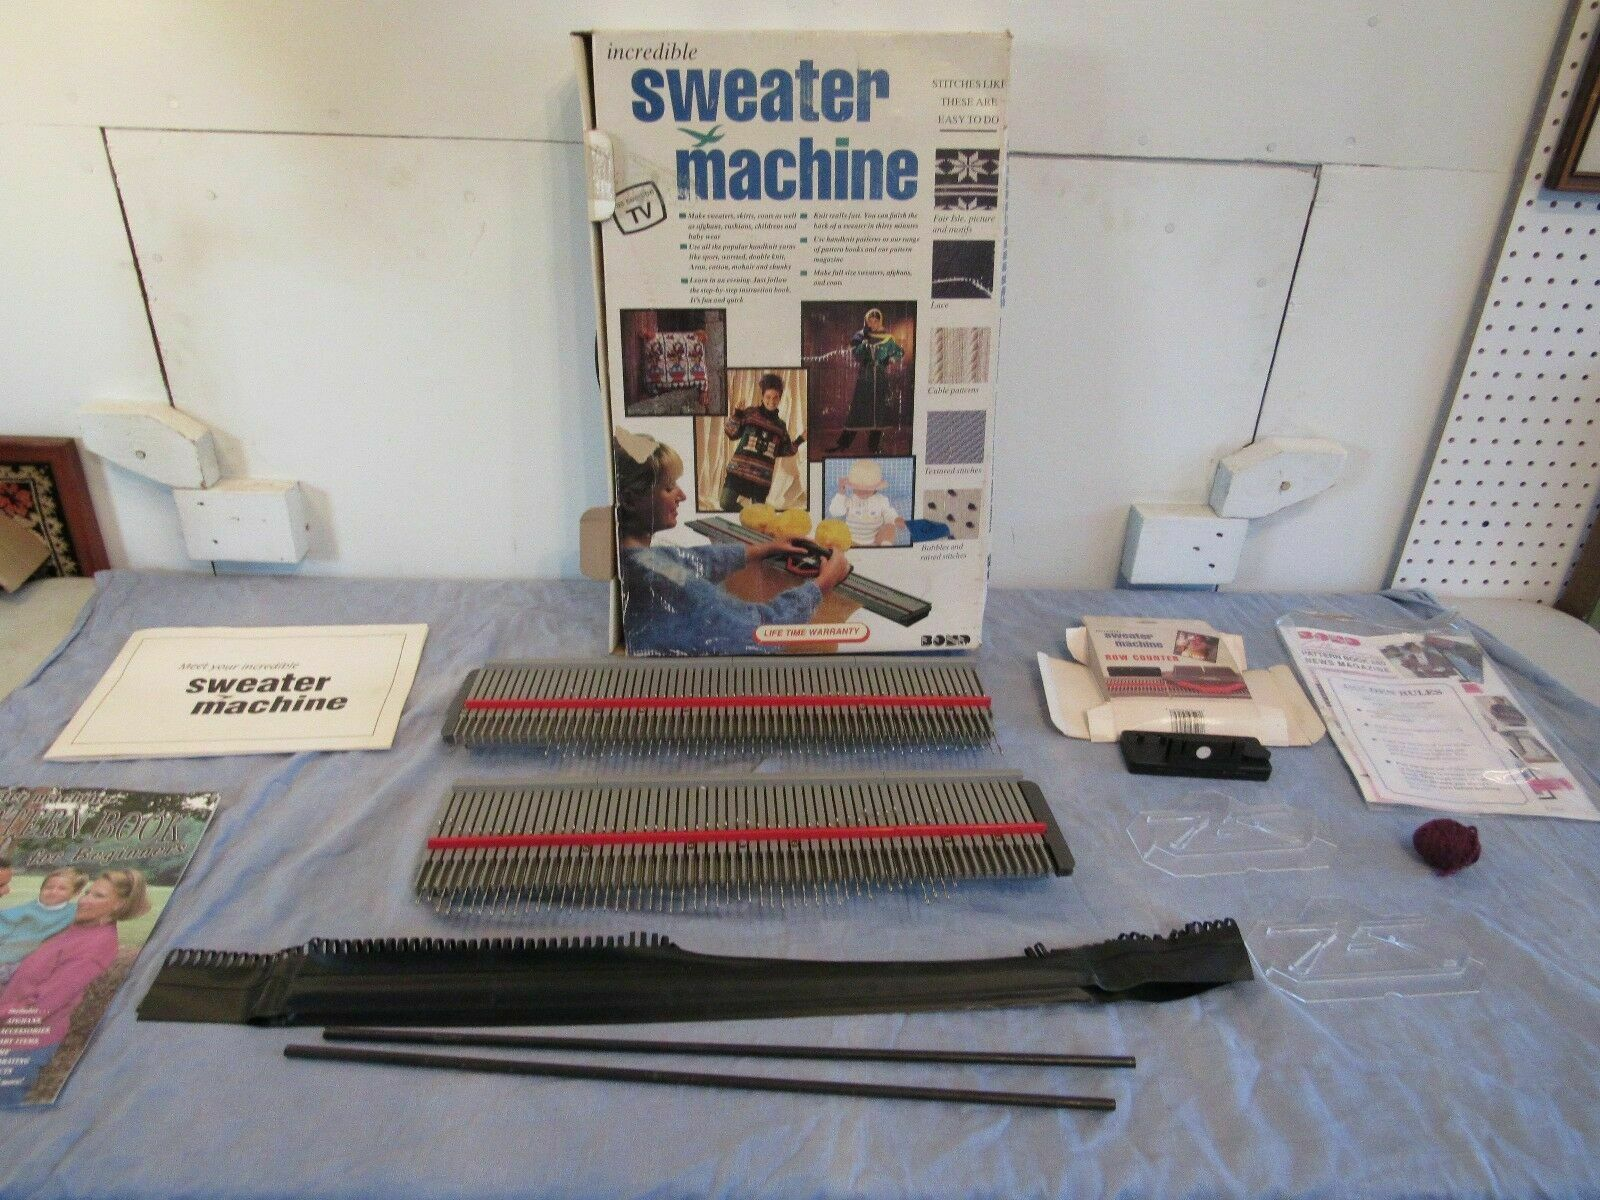 The Incredible Sweater Machine by Bond Knitting Machine Replacement Pieces  Parts 1 of 10Only 1 available See More